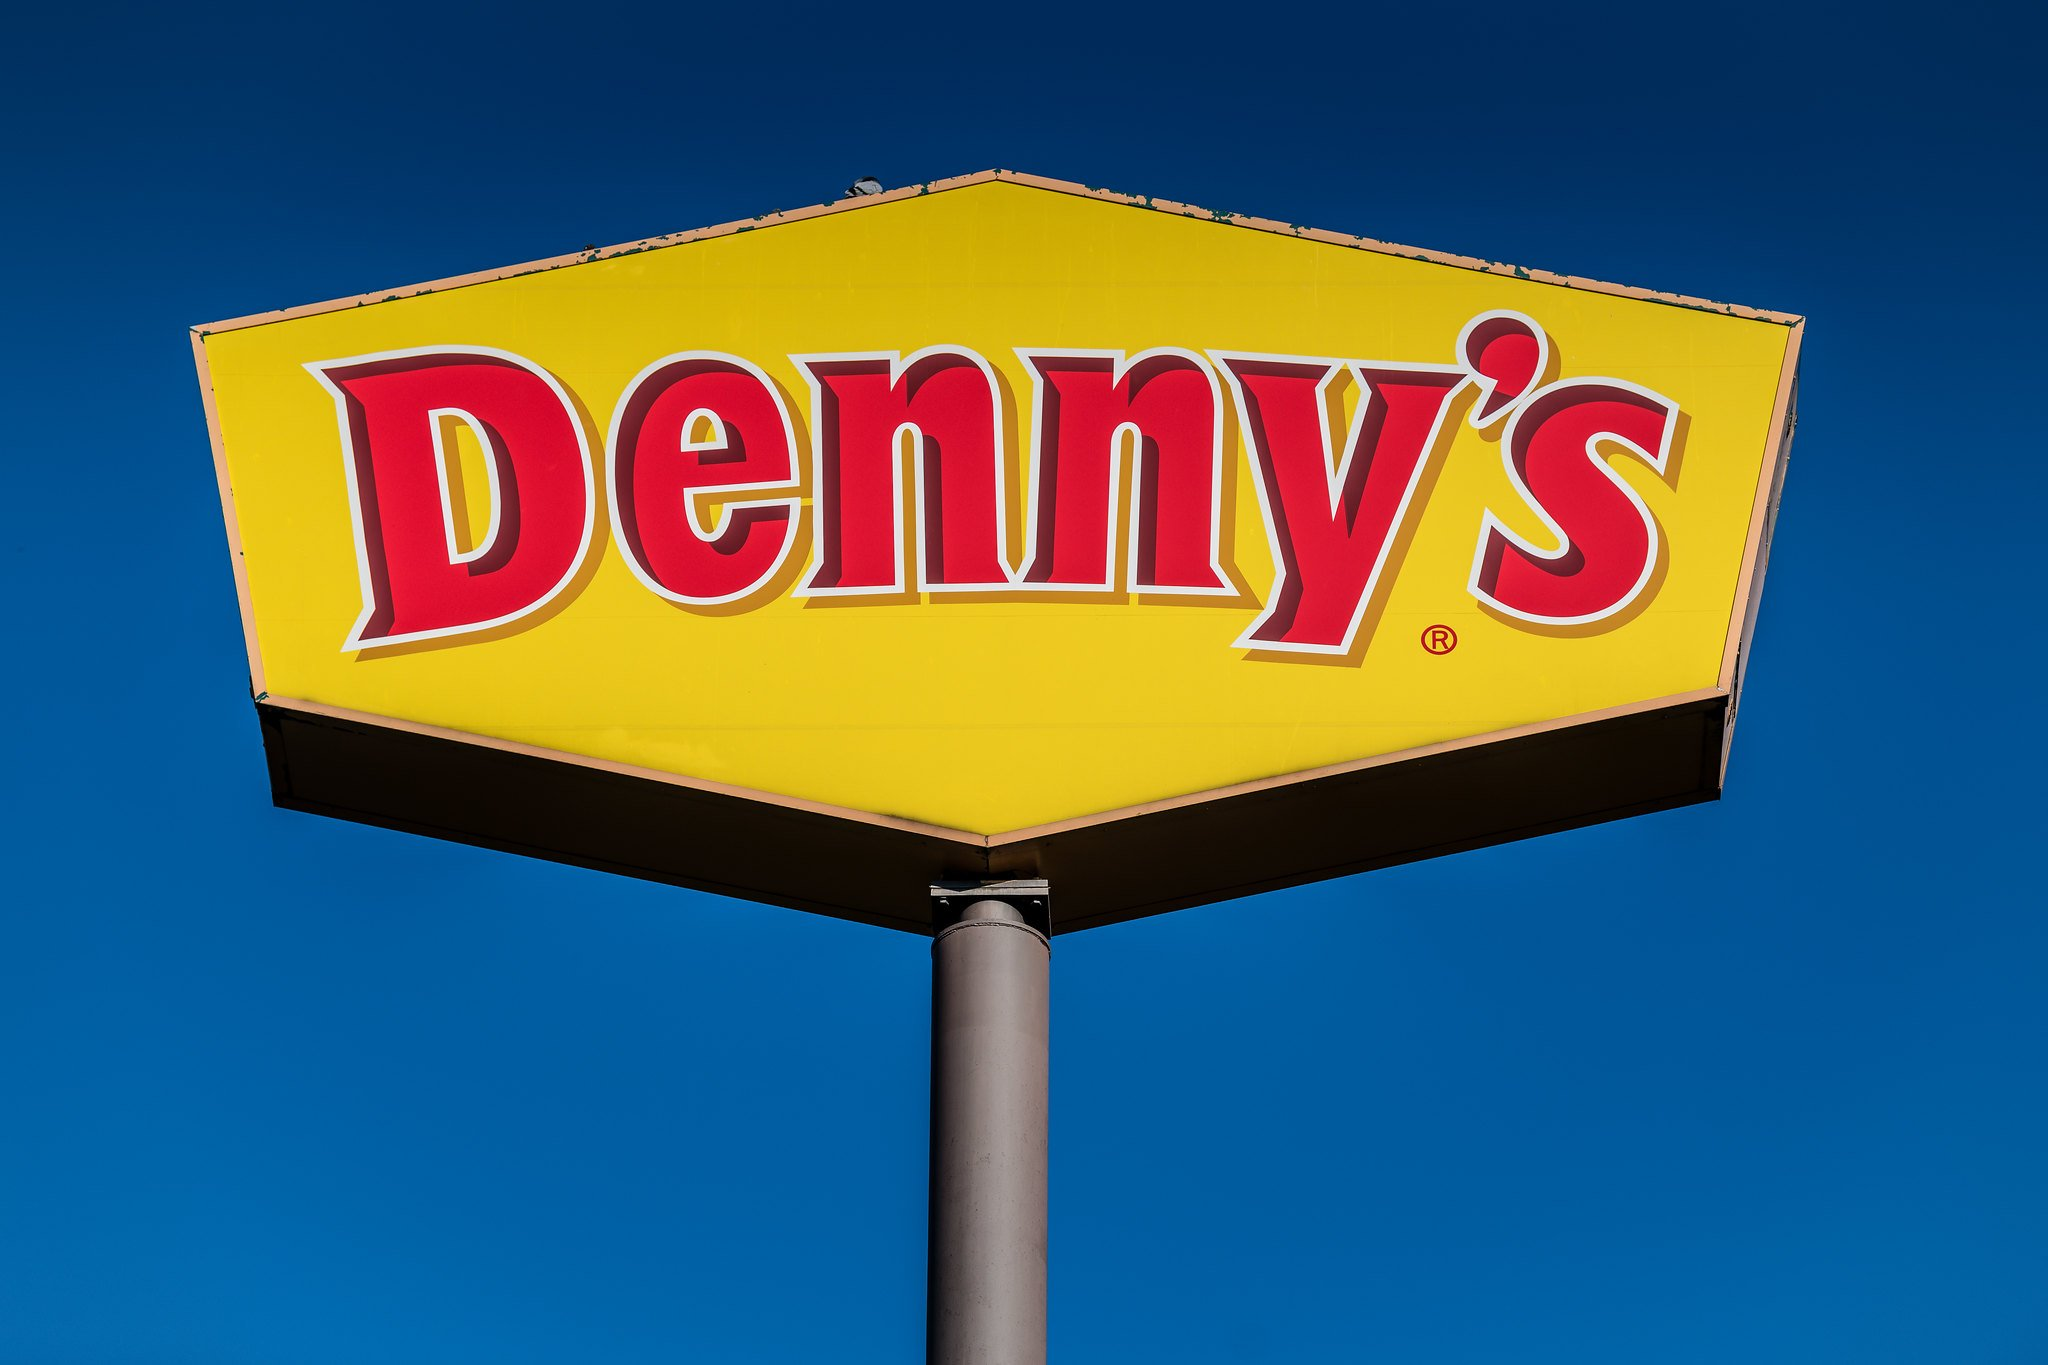 A closeup of the Denny's restaurant sign taken on September 2, 2018 | Photo: Flickr/Mr. Blue MauMau